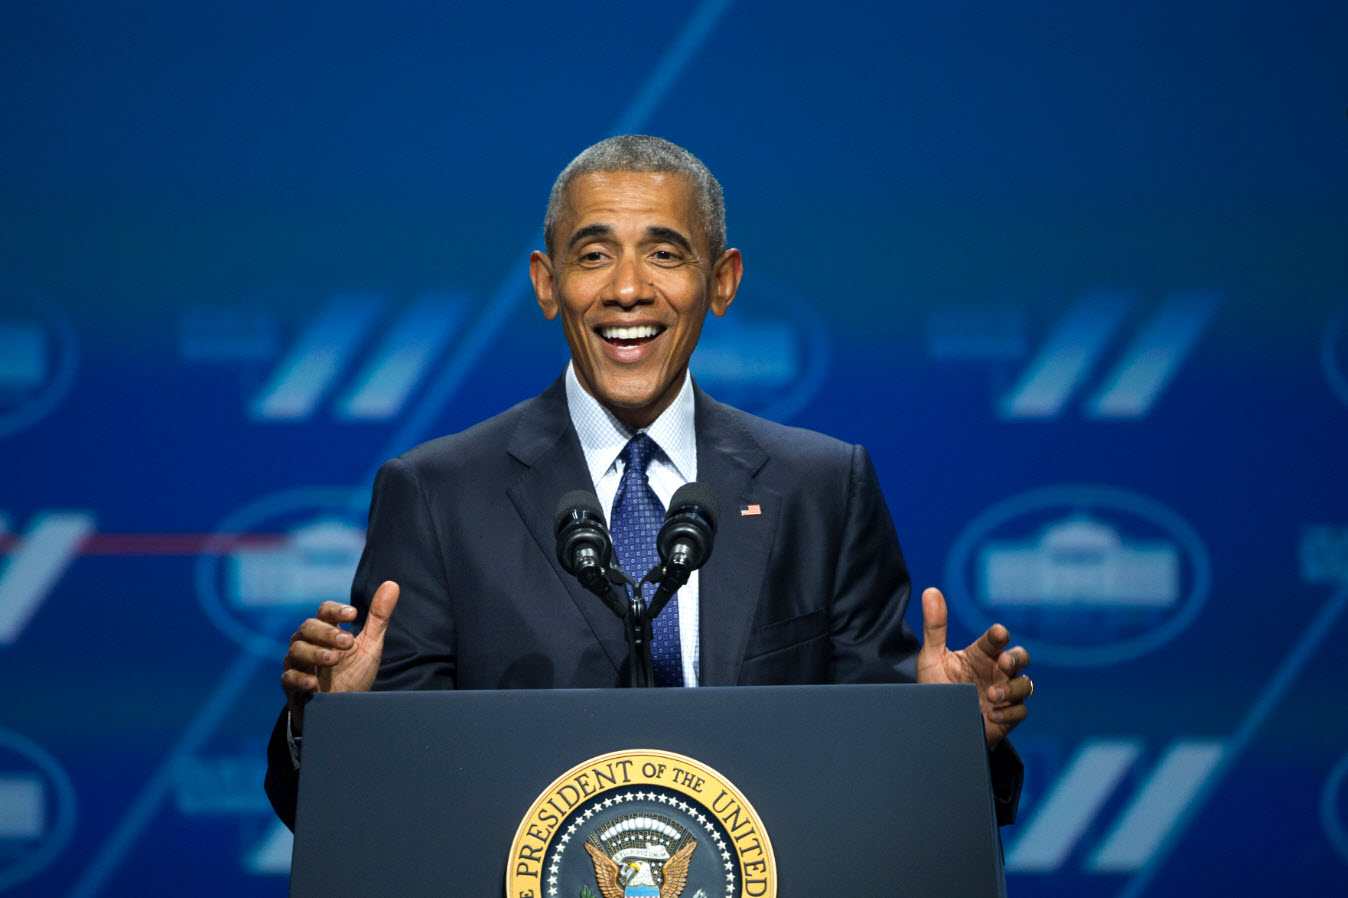 President Obama at the Women's Summit